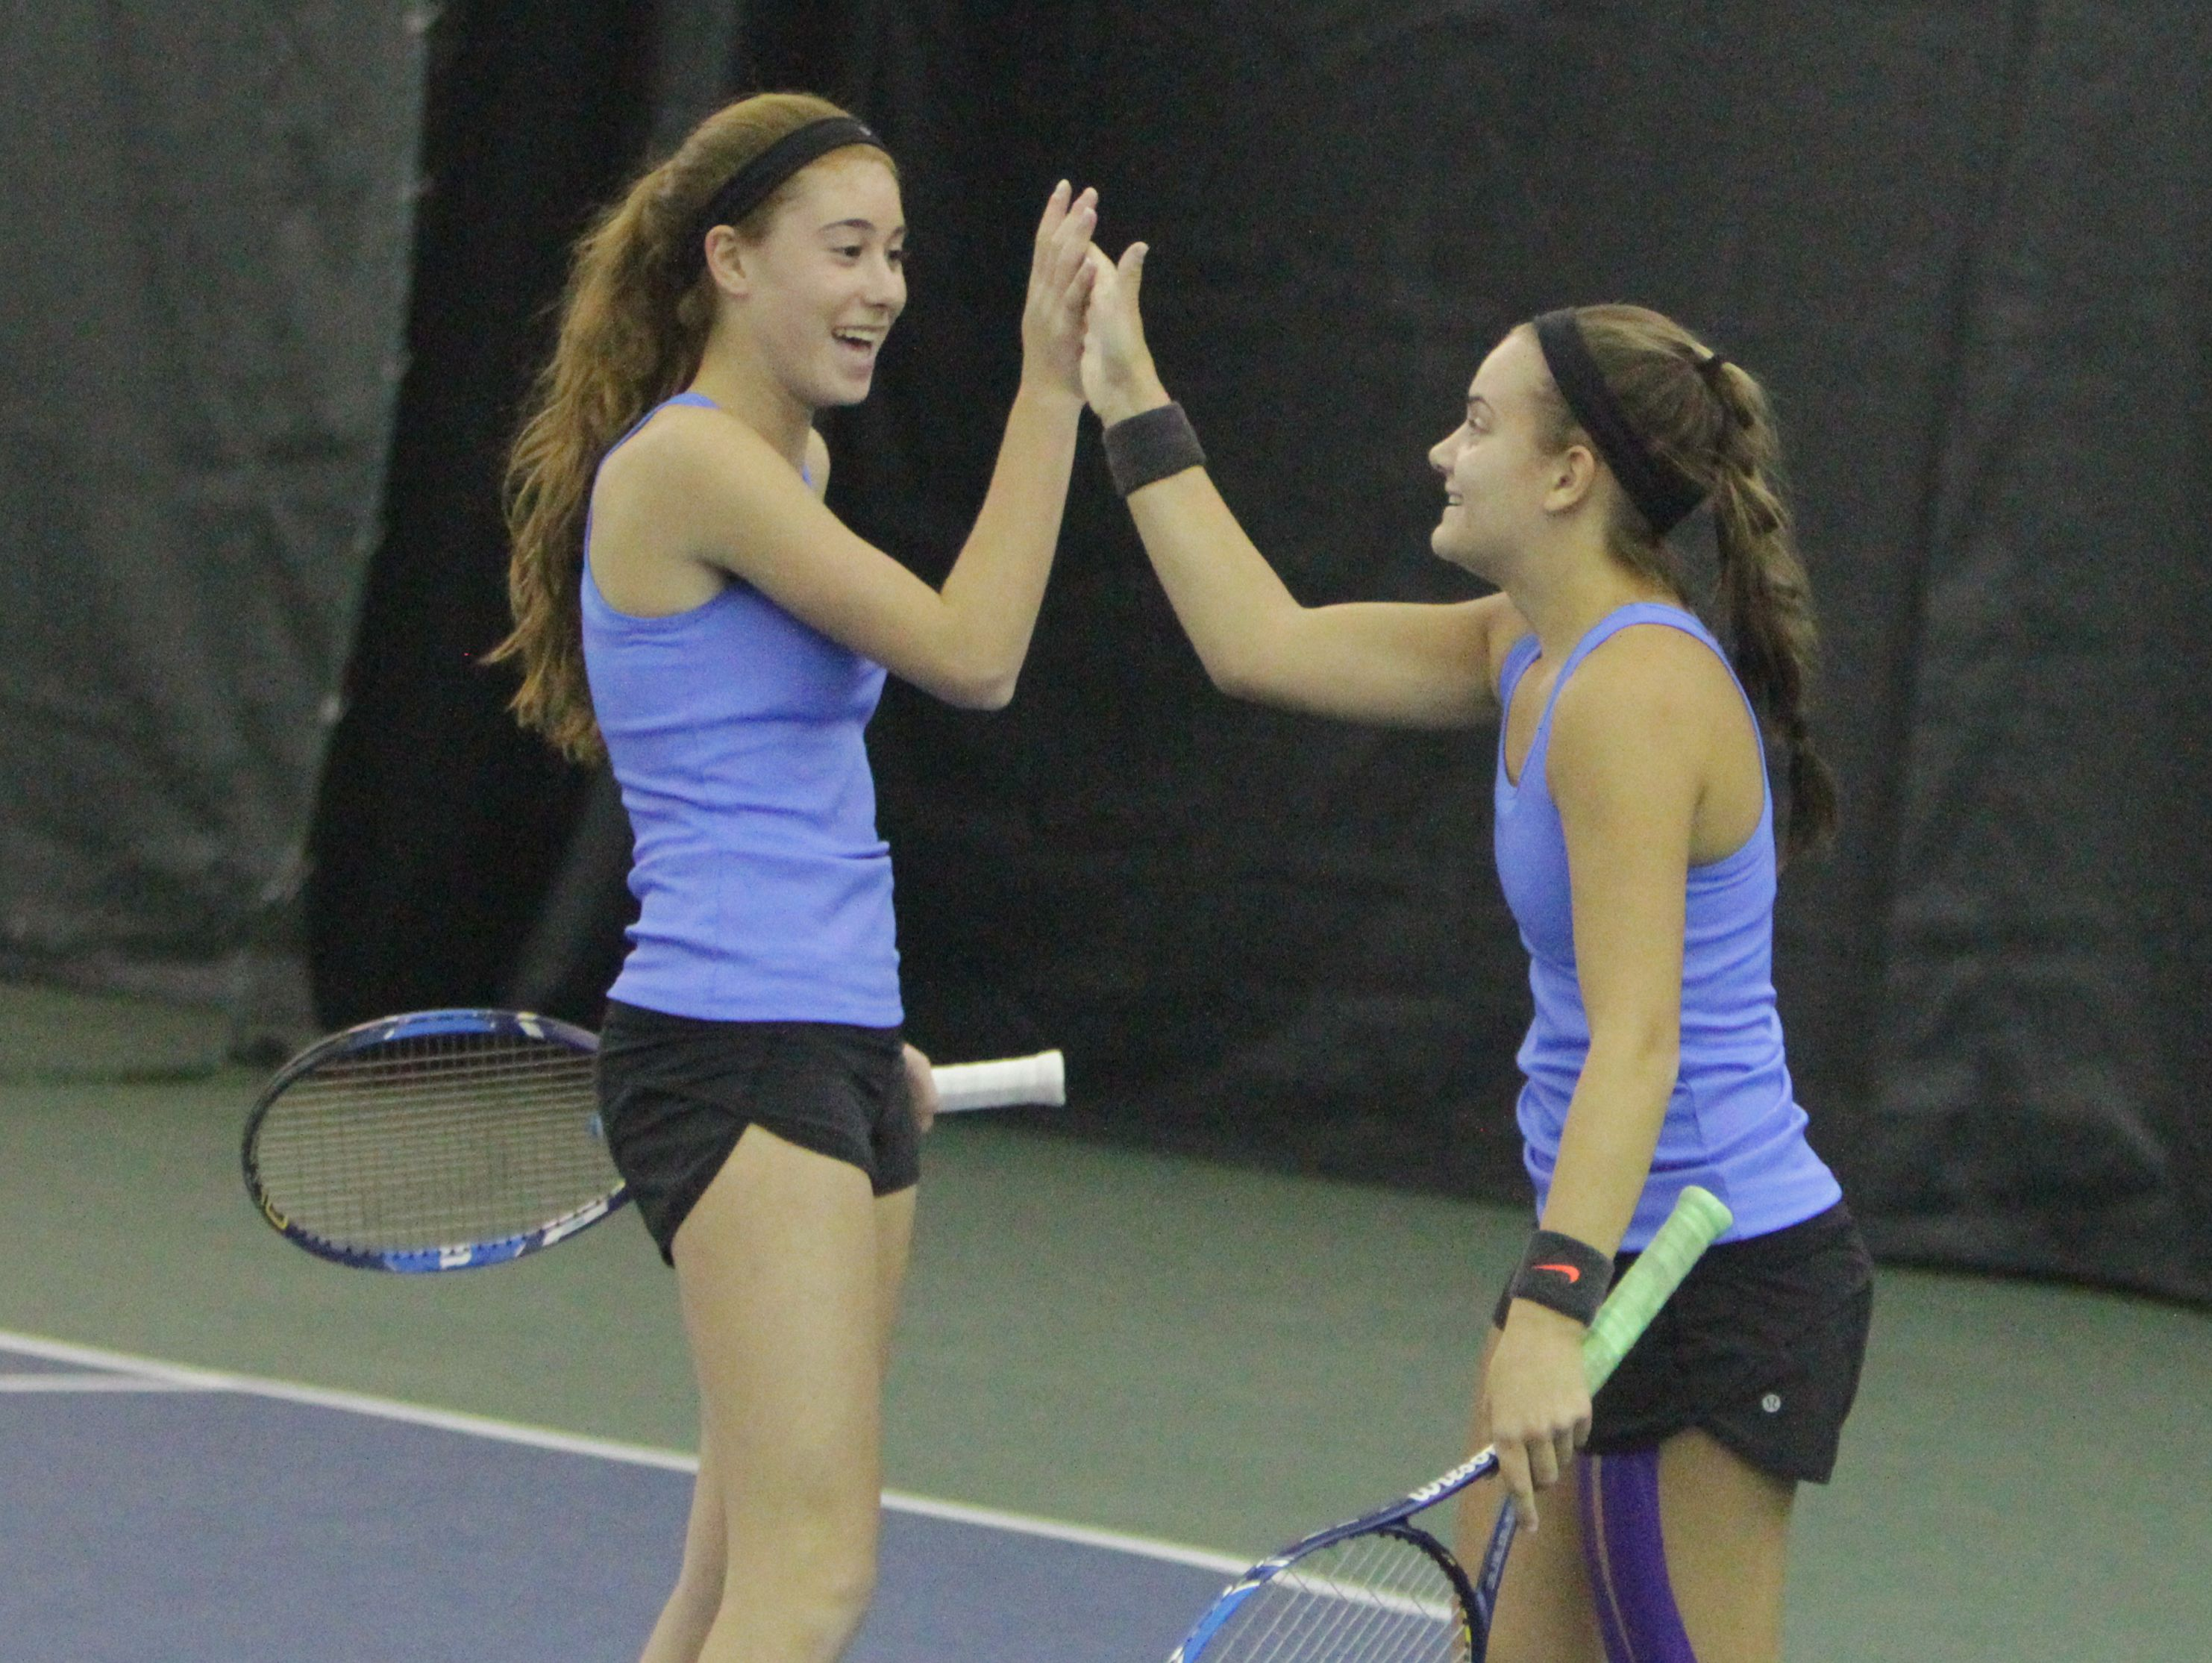 Ursuline's Vanessa Ciano (left) and Laina Campos celebrate after winning a point during a quarterfinal match at the New York State girls tennis tournament at Sound Shore Indoor Tennis in Port Chester on Sunday, Oct. 30th, 2016.